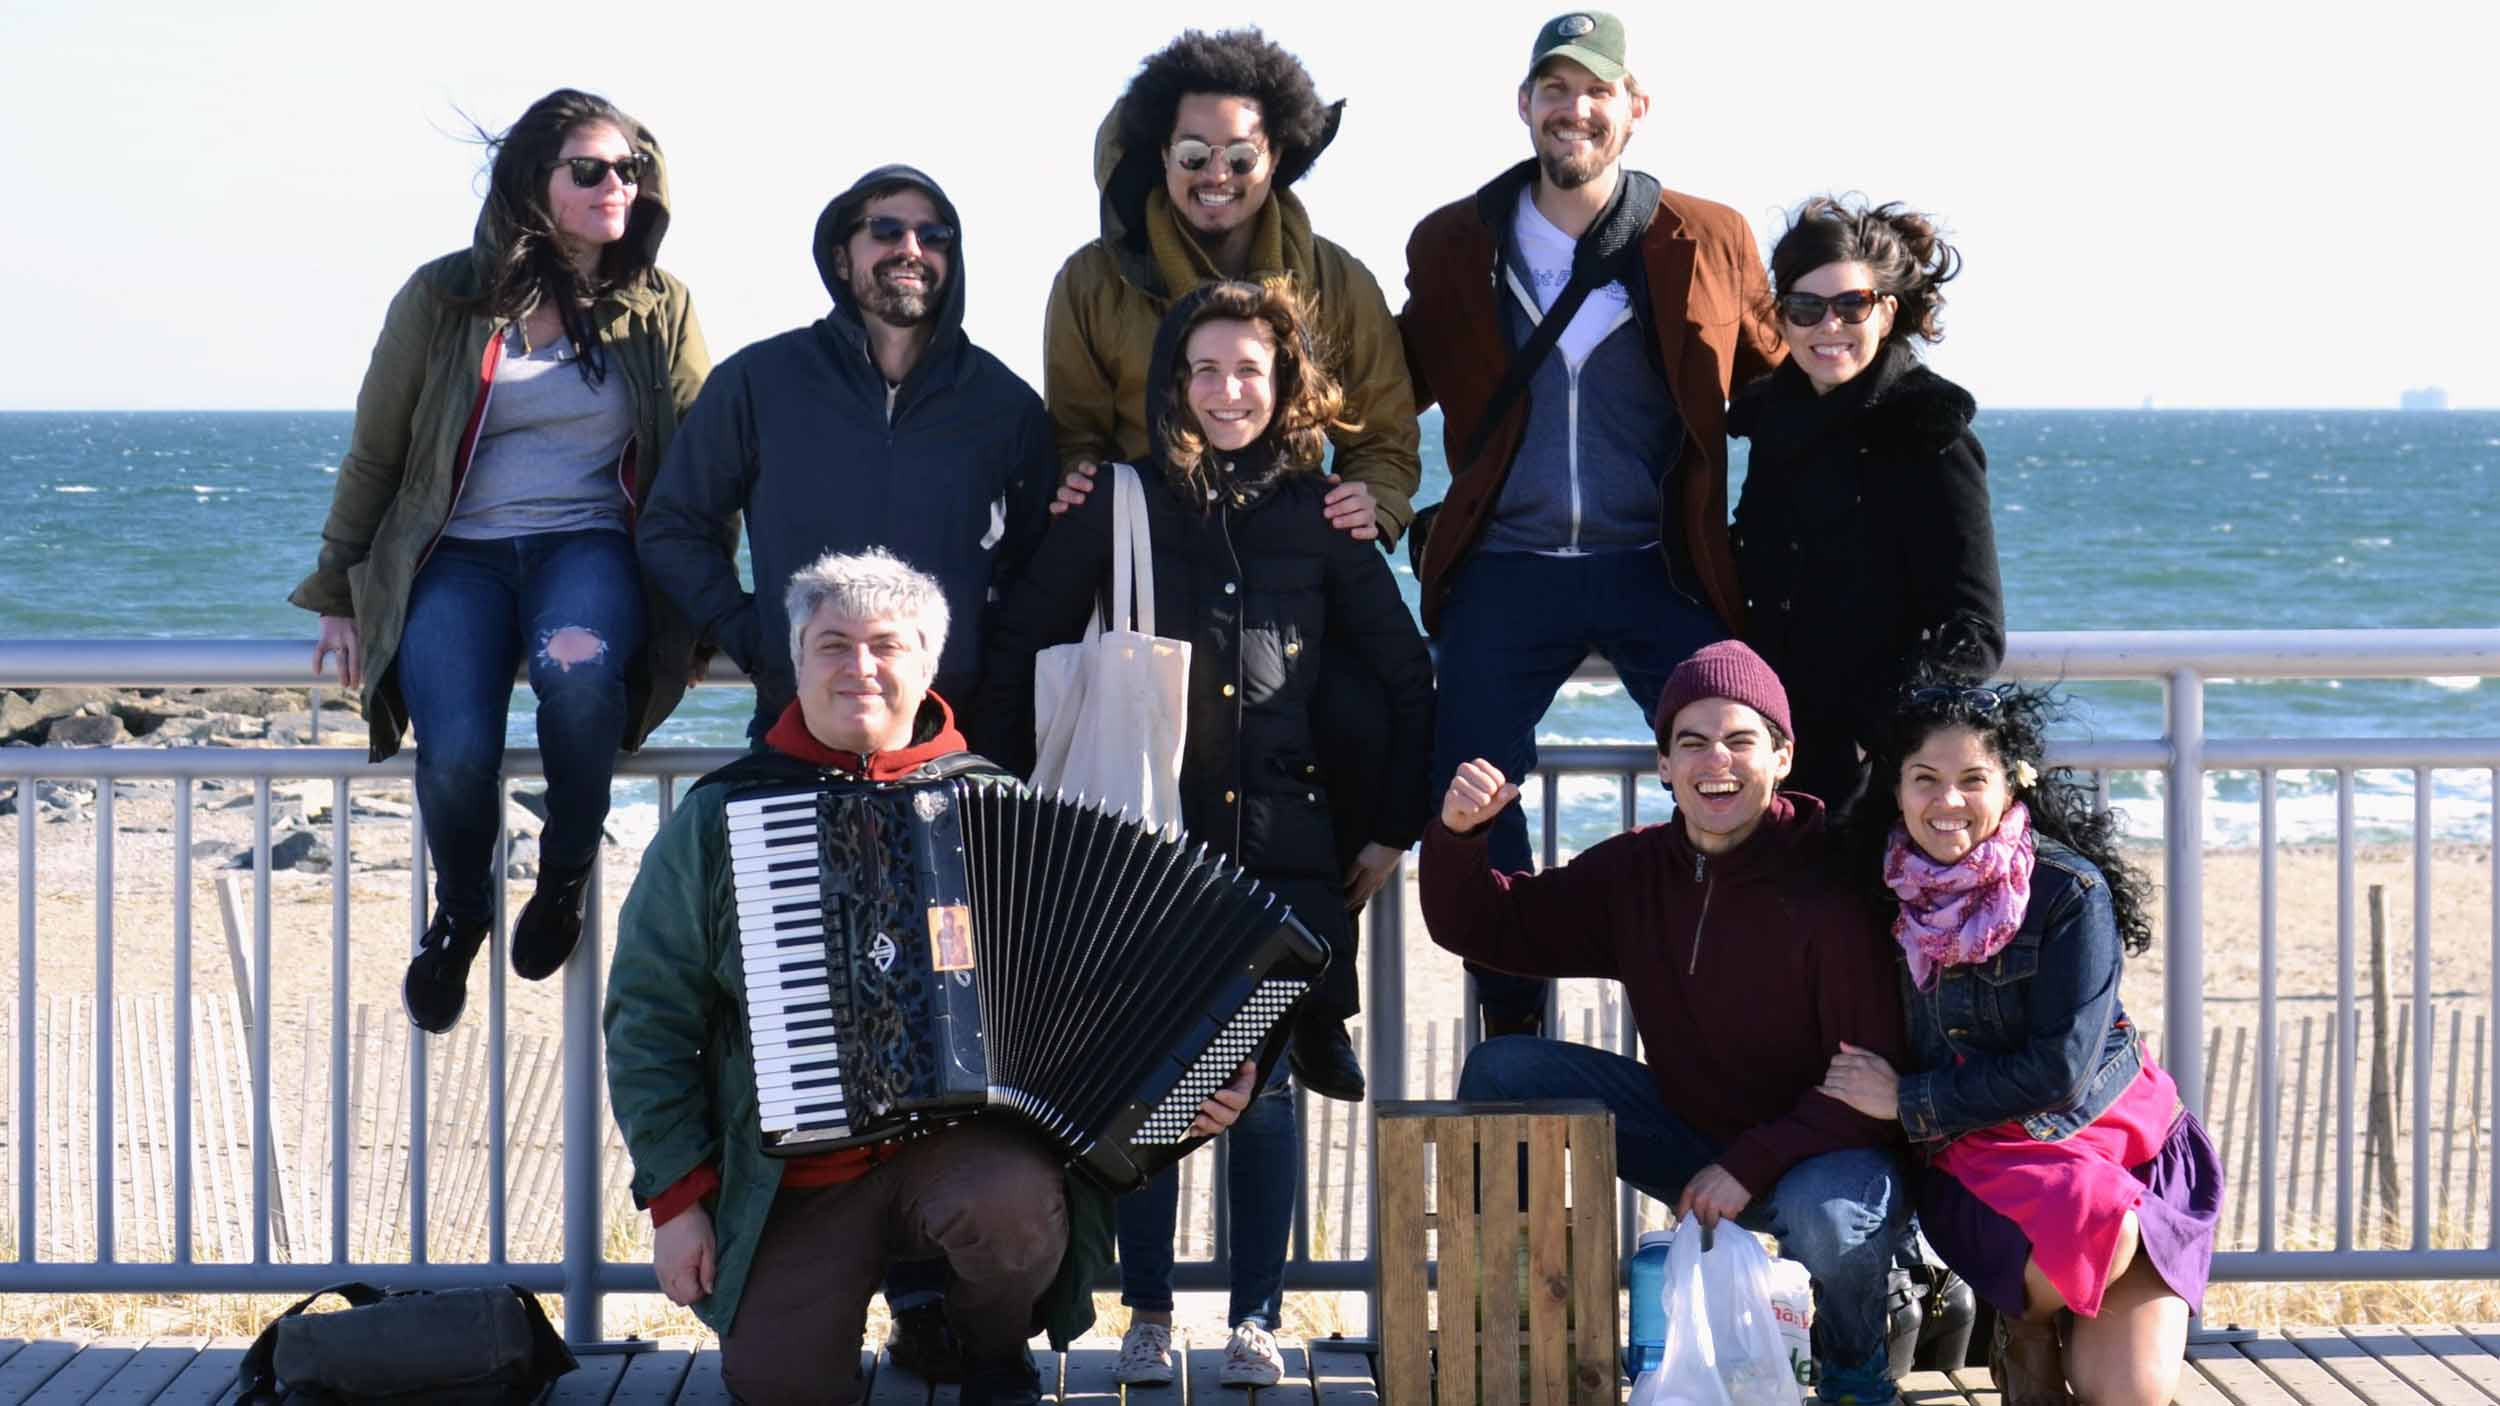 At Rockaway Beach, the day of our first performance. Back row: Lindy Lofton, Jedadiah Schultz, Will Shaw, Per Janson. Middle row: Sylvia Kates, Robin Galloway. Front: Daniele Mutino, Bradley Tejeda, and Annie Henk.